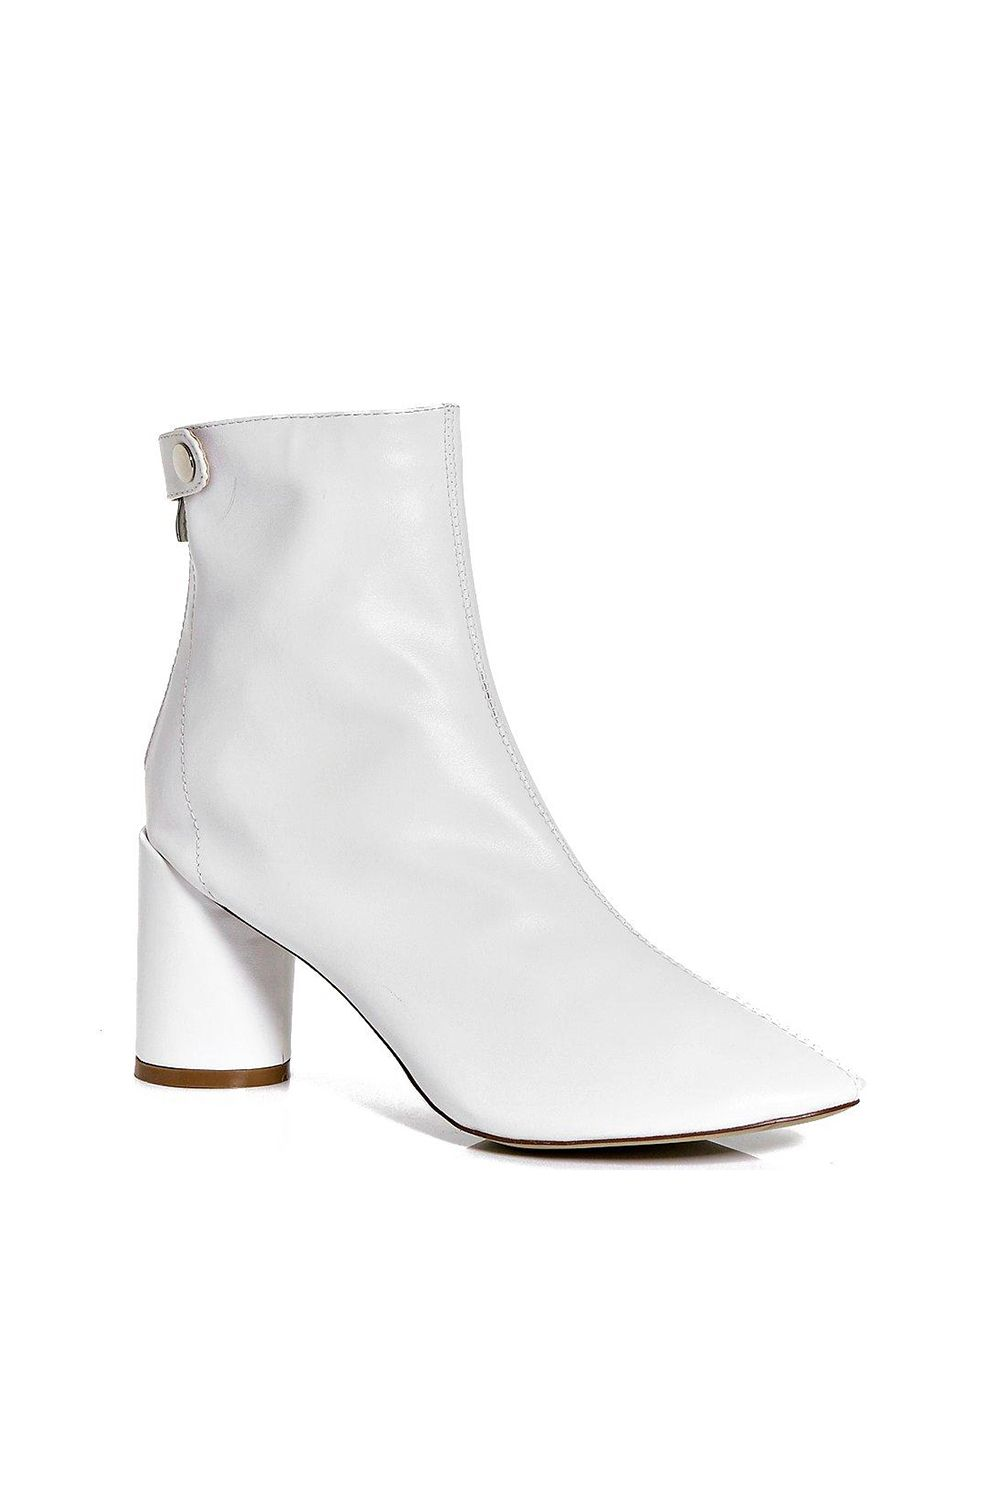 "<p>So clean...until you go outside, but that's part of the charm.&nbsp&#x3B;</p><p>$50, <a href=""http://www.boohoo.com/boots/claire-cylinder-heel-sock-boot/invt/dzz71383"" target=""_blank"">boohoo.com</a>.</p>"